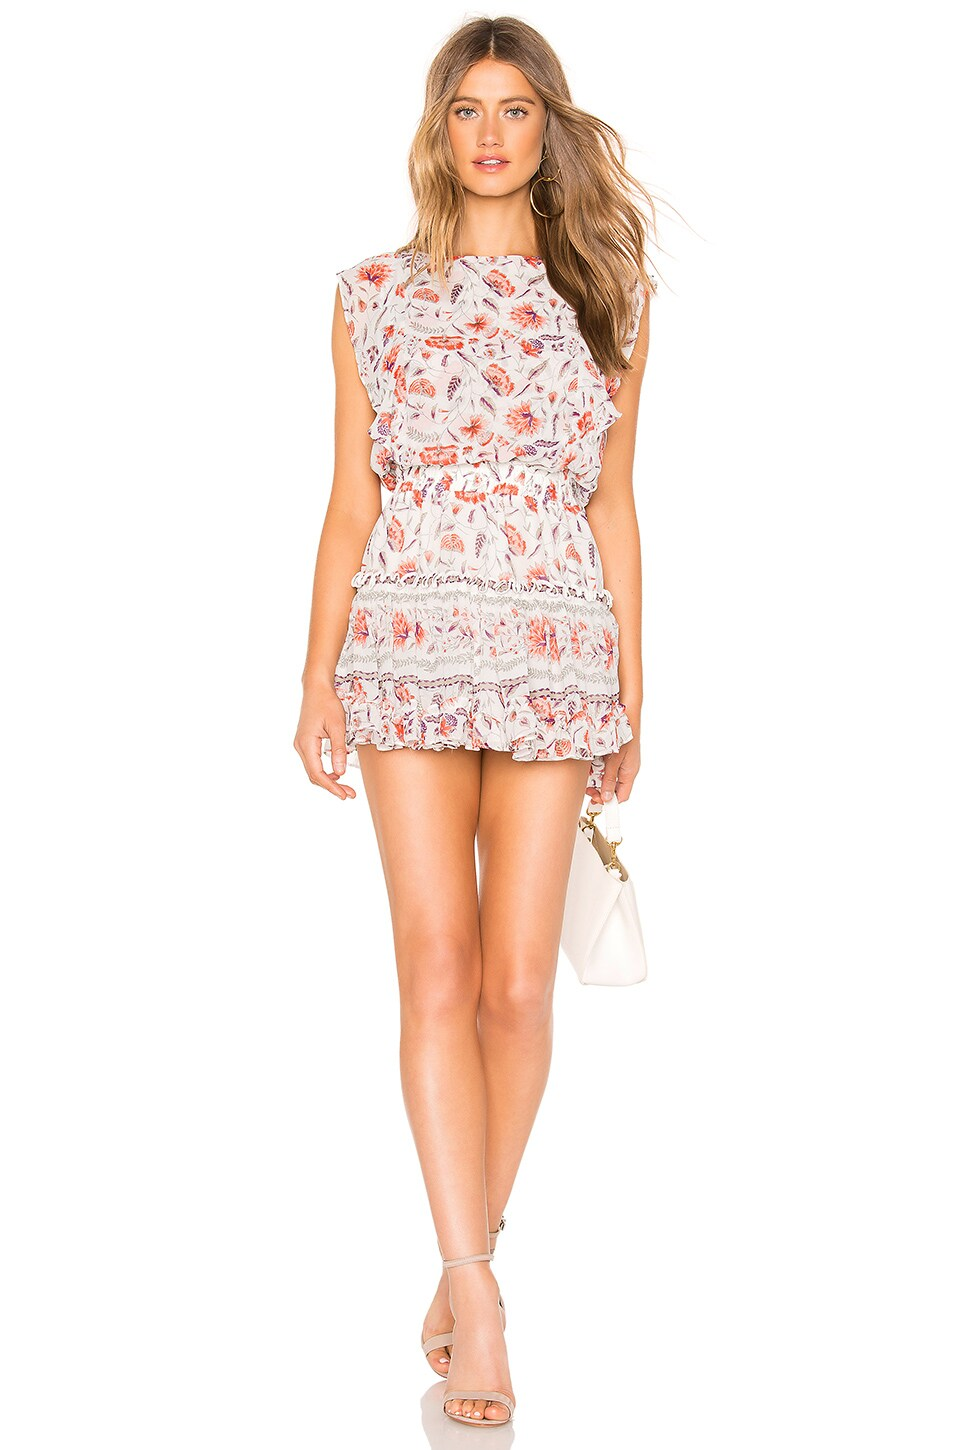 MISA Los Angeles Ginia Dress in White & Red Floral